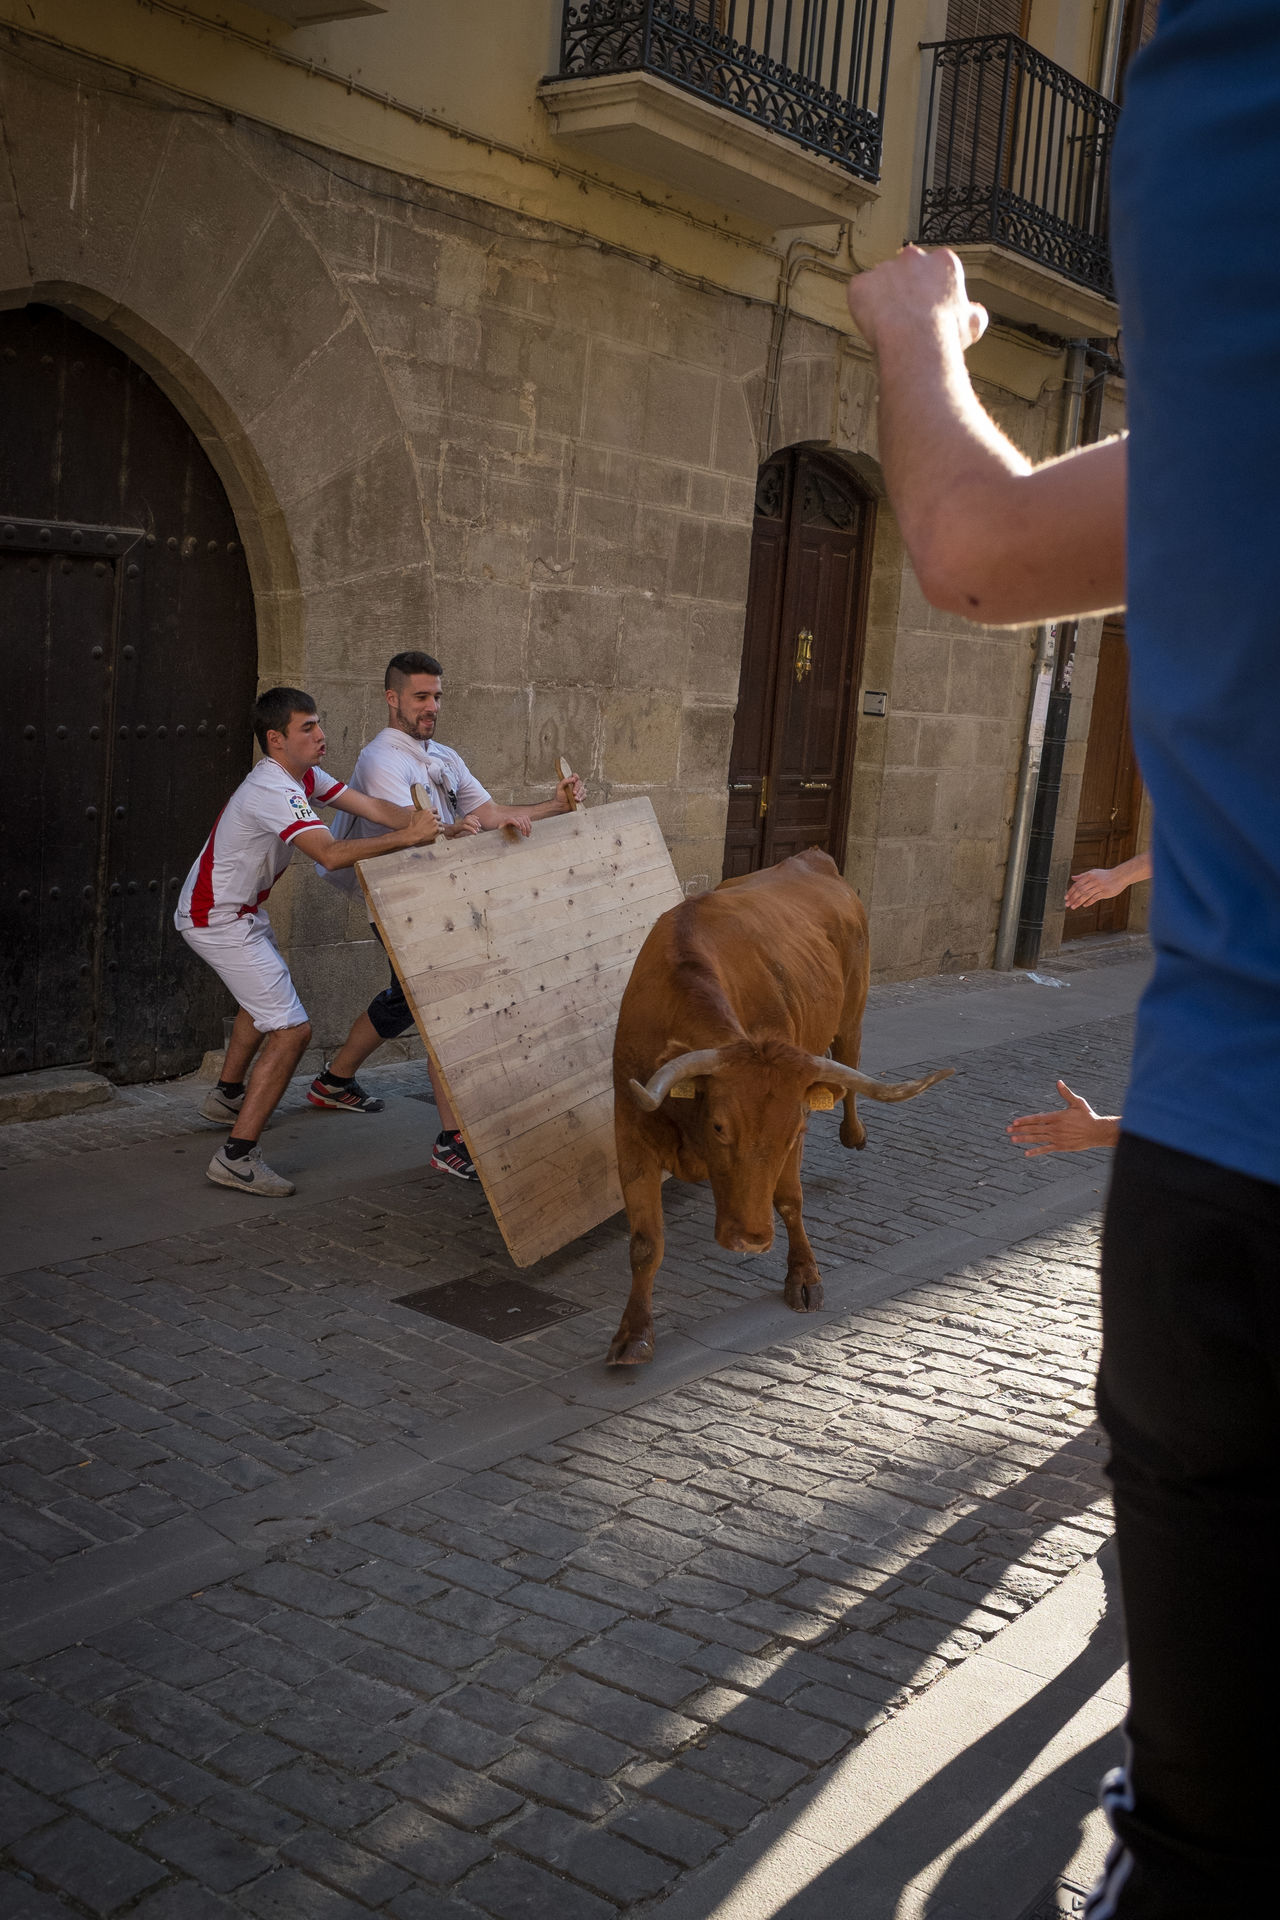 These two guys were full of bravado all the while they were stood behind their large slab of timber, then suddenly, once the young bull came careering down the cobbles, their faces changed in an instant. Cheered on by their friends, they withstood about 6 or 7 passes by the bull as it got progressively more tired. Bull Bull Run Bull Running Charge Puente La Reina SPAIN Streetphotography The Street Photographer - 2016 EyeEm Awards Youths